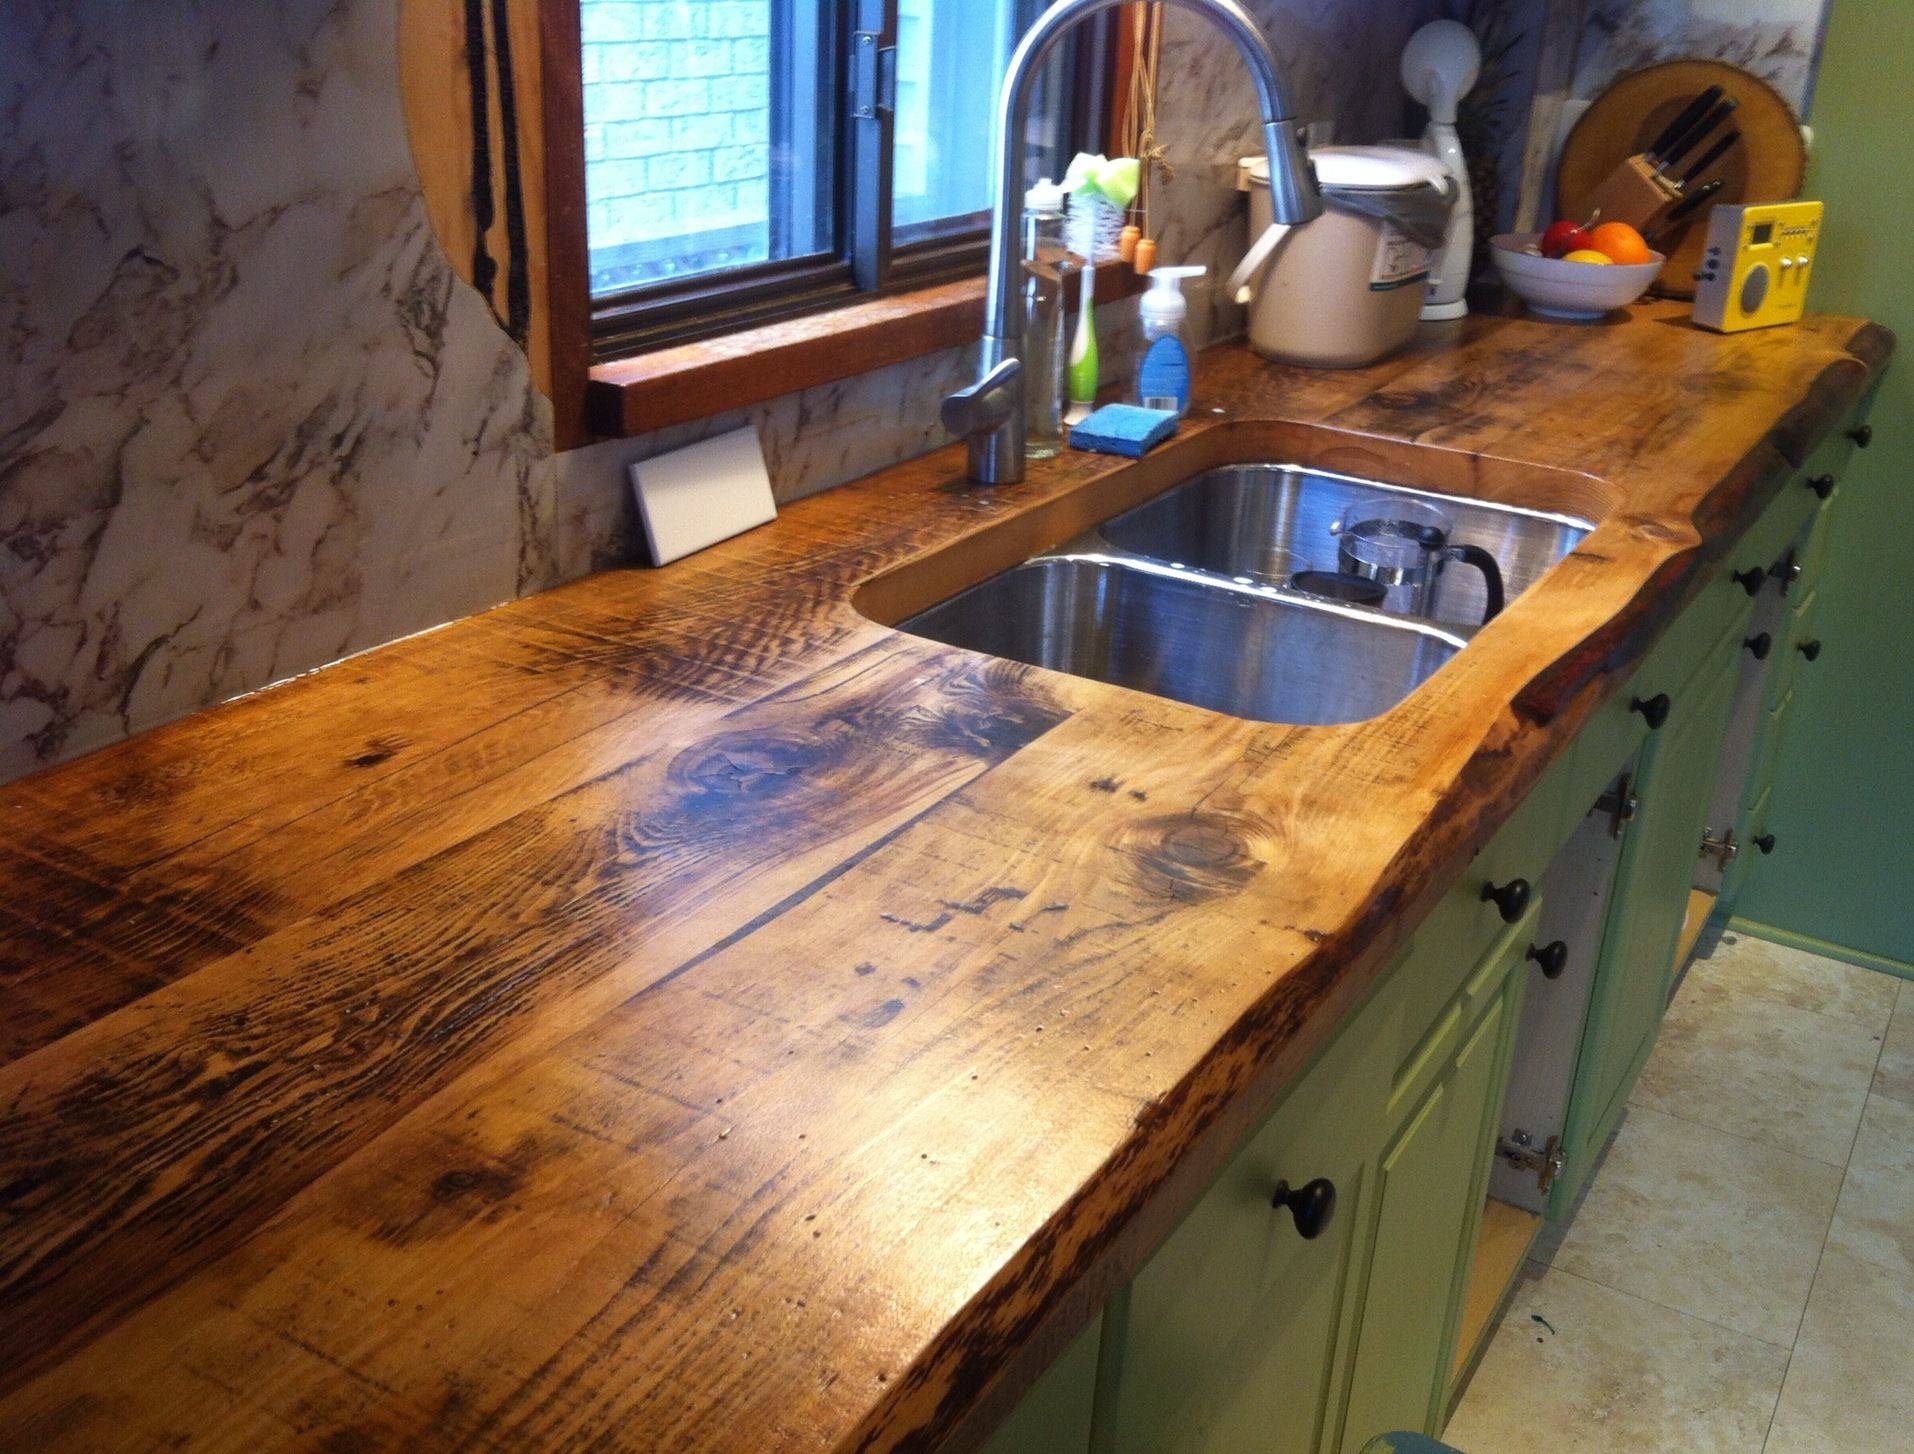 Awesome live edge kitchen counter built with 2 inch thick hemlock floor boards by barnboardstore - Plan de travail acacia ...